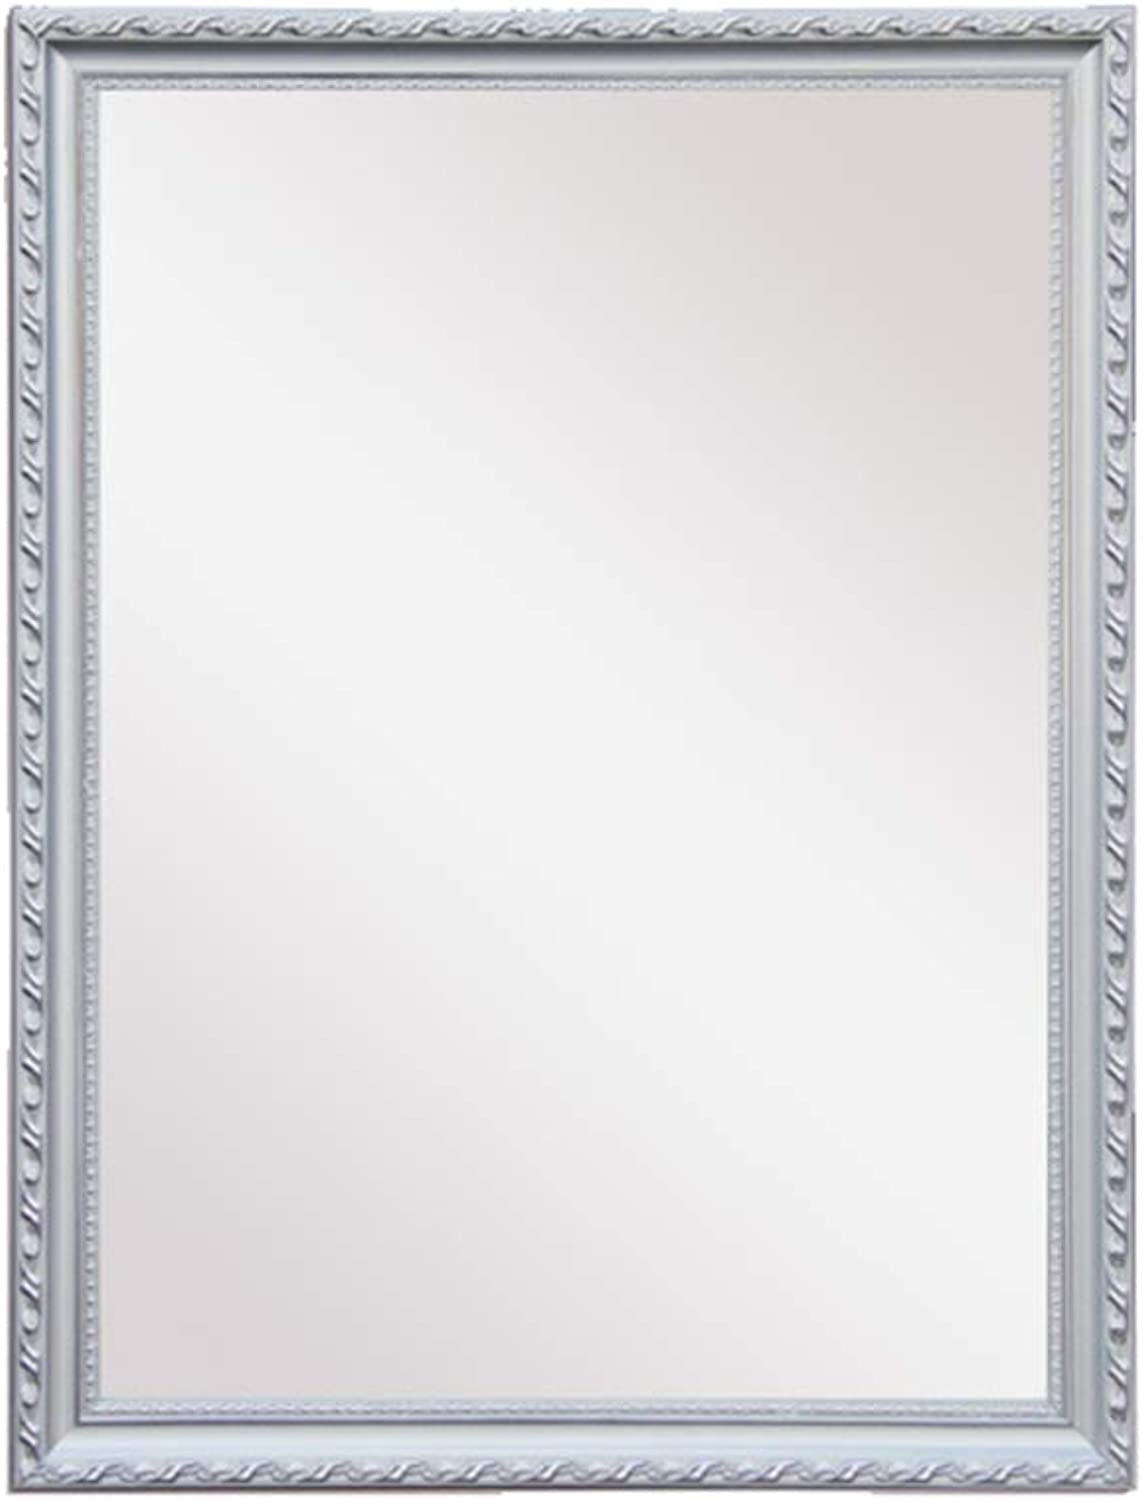 Mirror Rectangular Wooden Frame Wall Hanging Bathroom Mirror Makeup Mirror 19  27 inches (50  70cm)